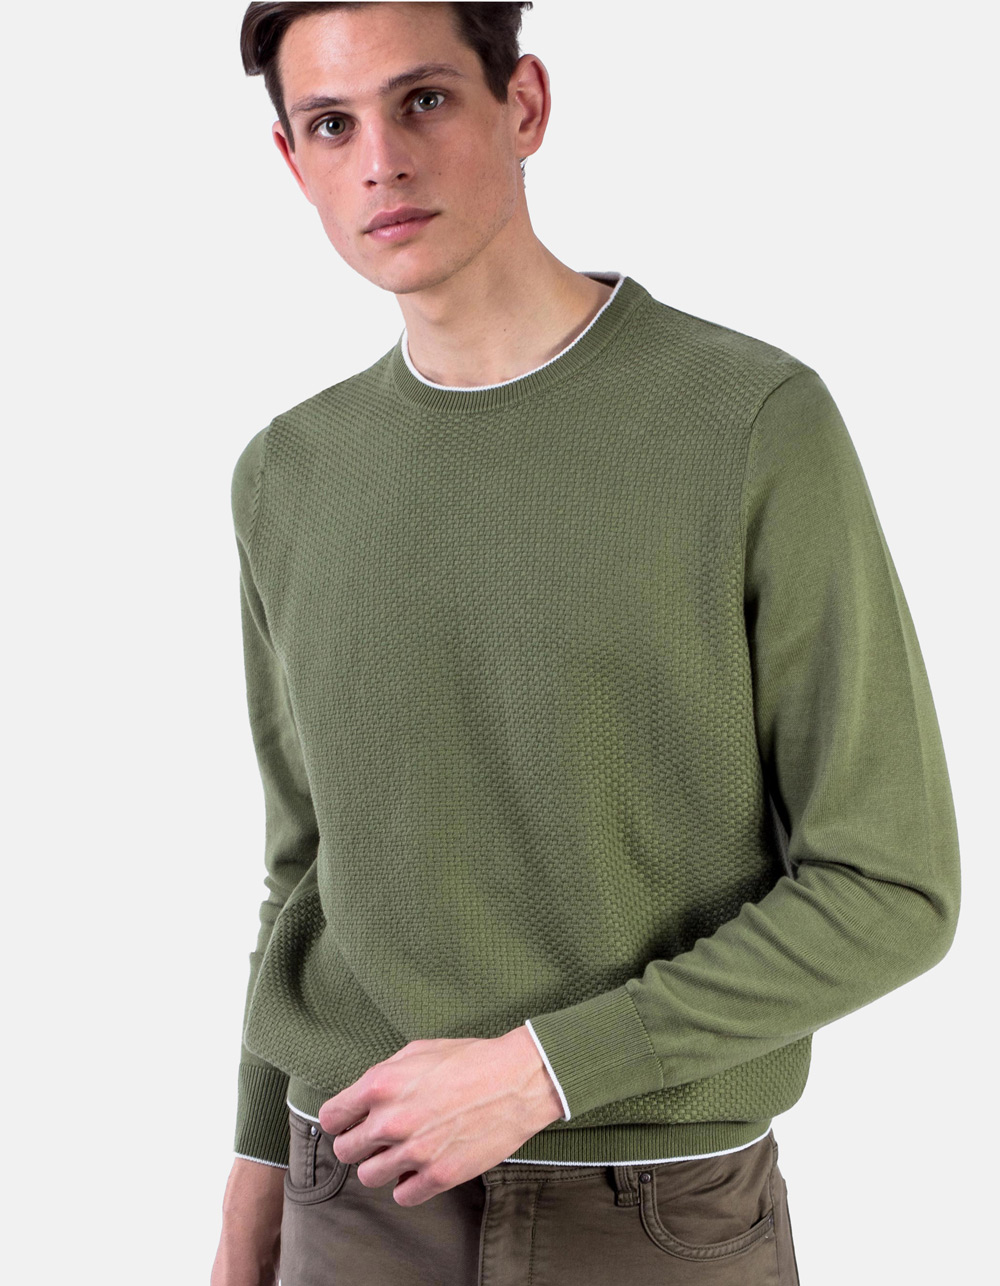 Green round collar sweater structure